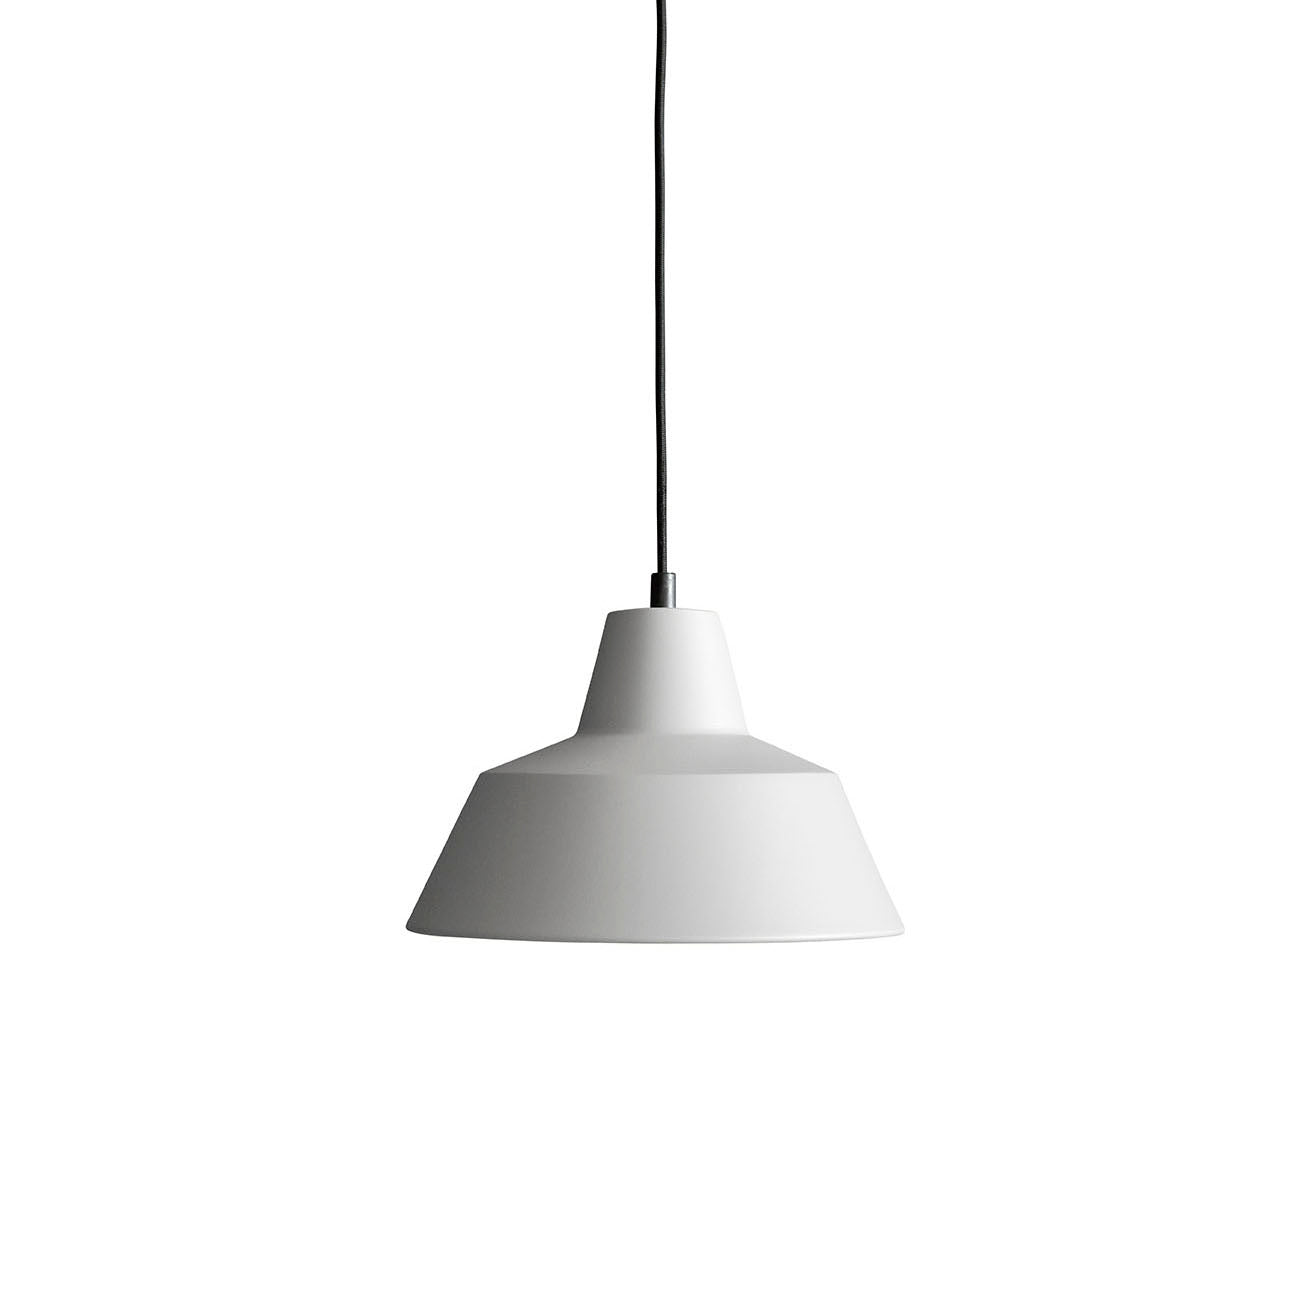 Workshop Pendant Lamp W2: Grey